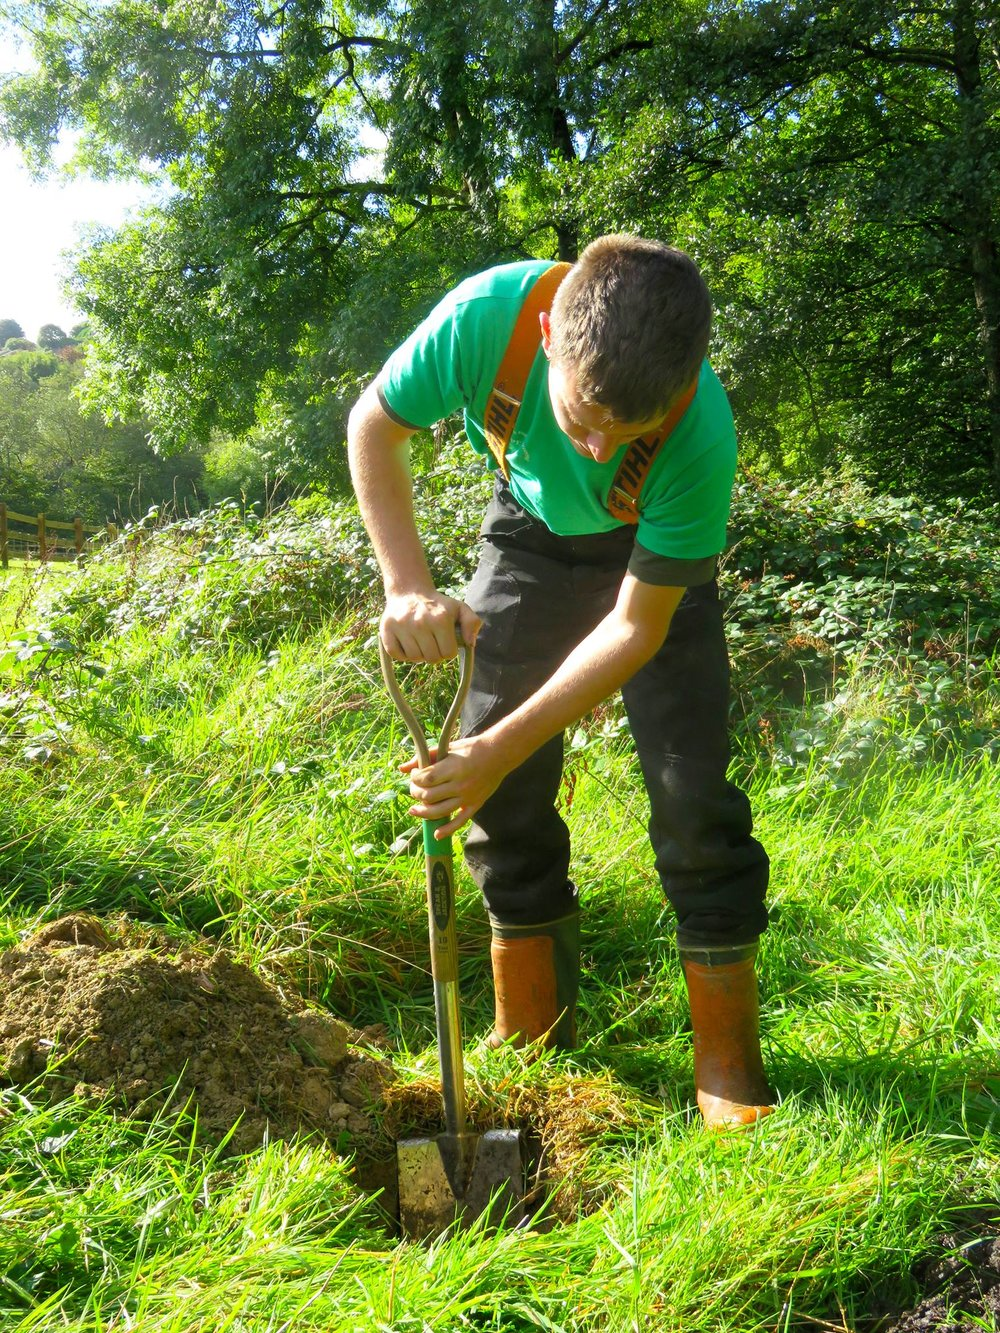 Land management Services by Chris Bond, Devon/Cornwall/Southwest England UK.  www.stonewalling-hedgelaying.co.uk